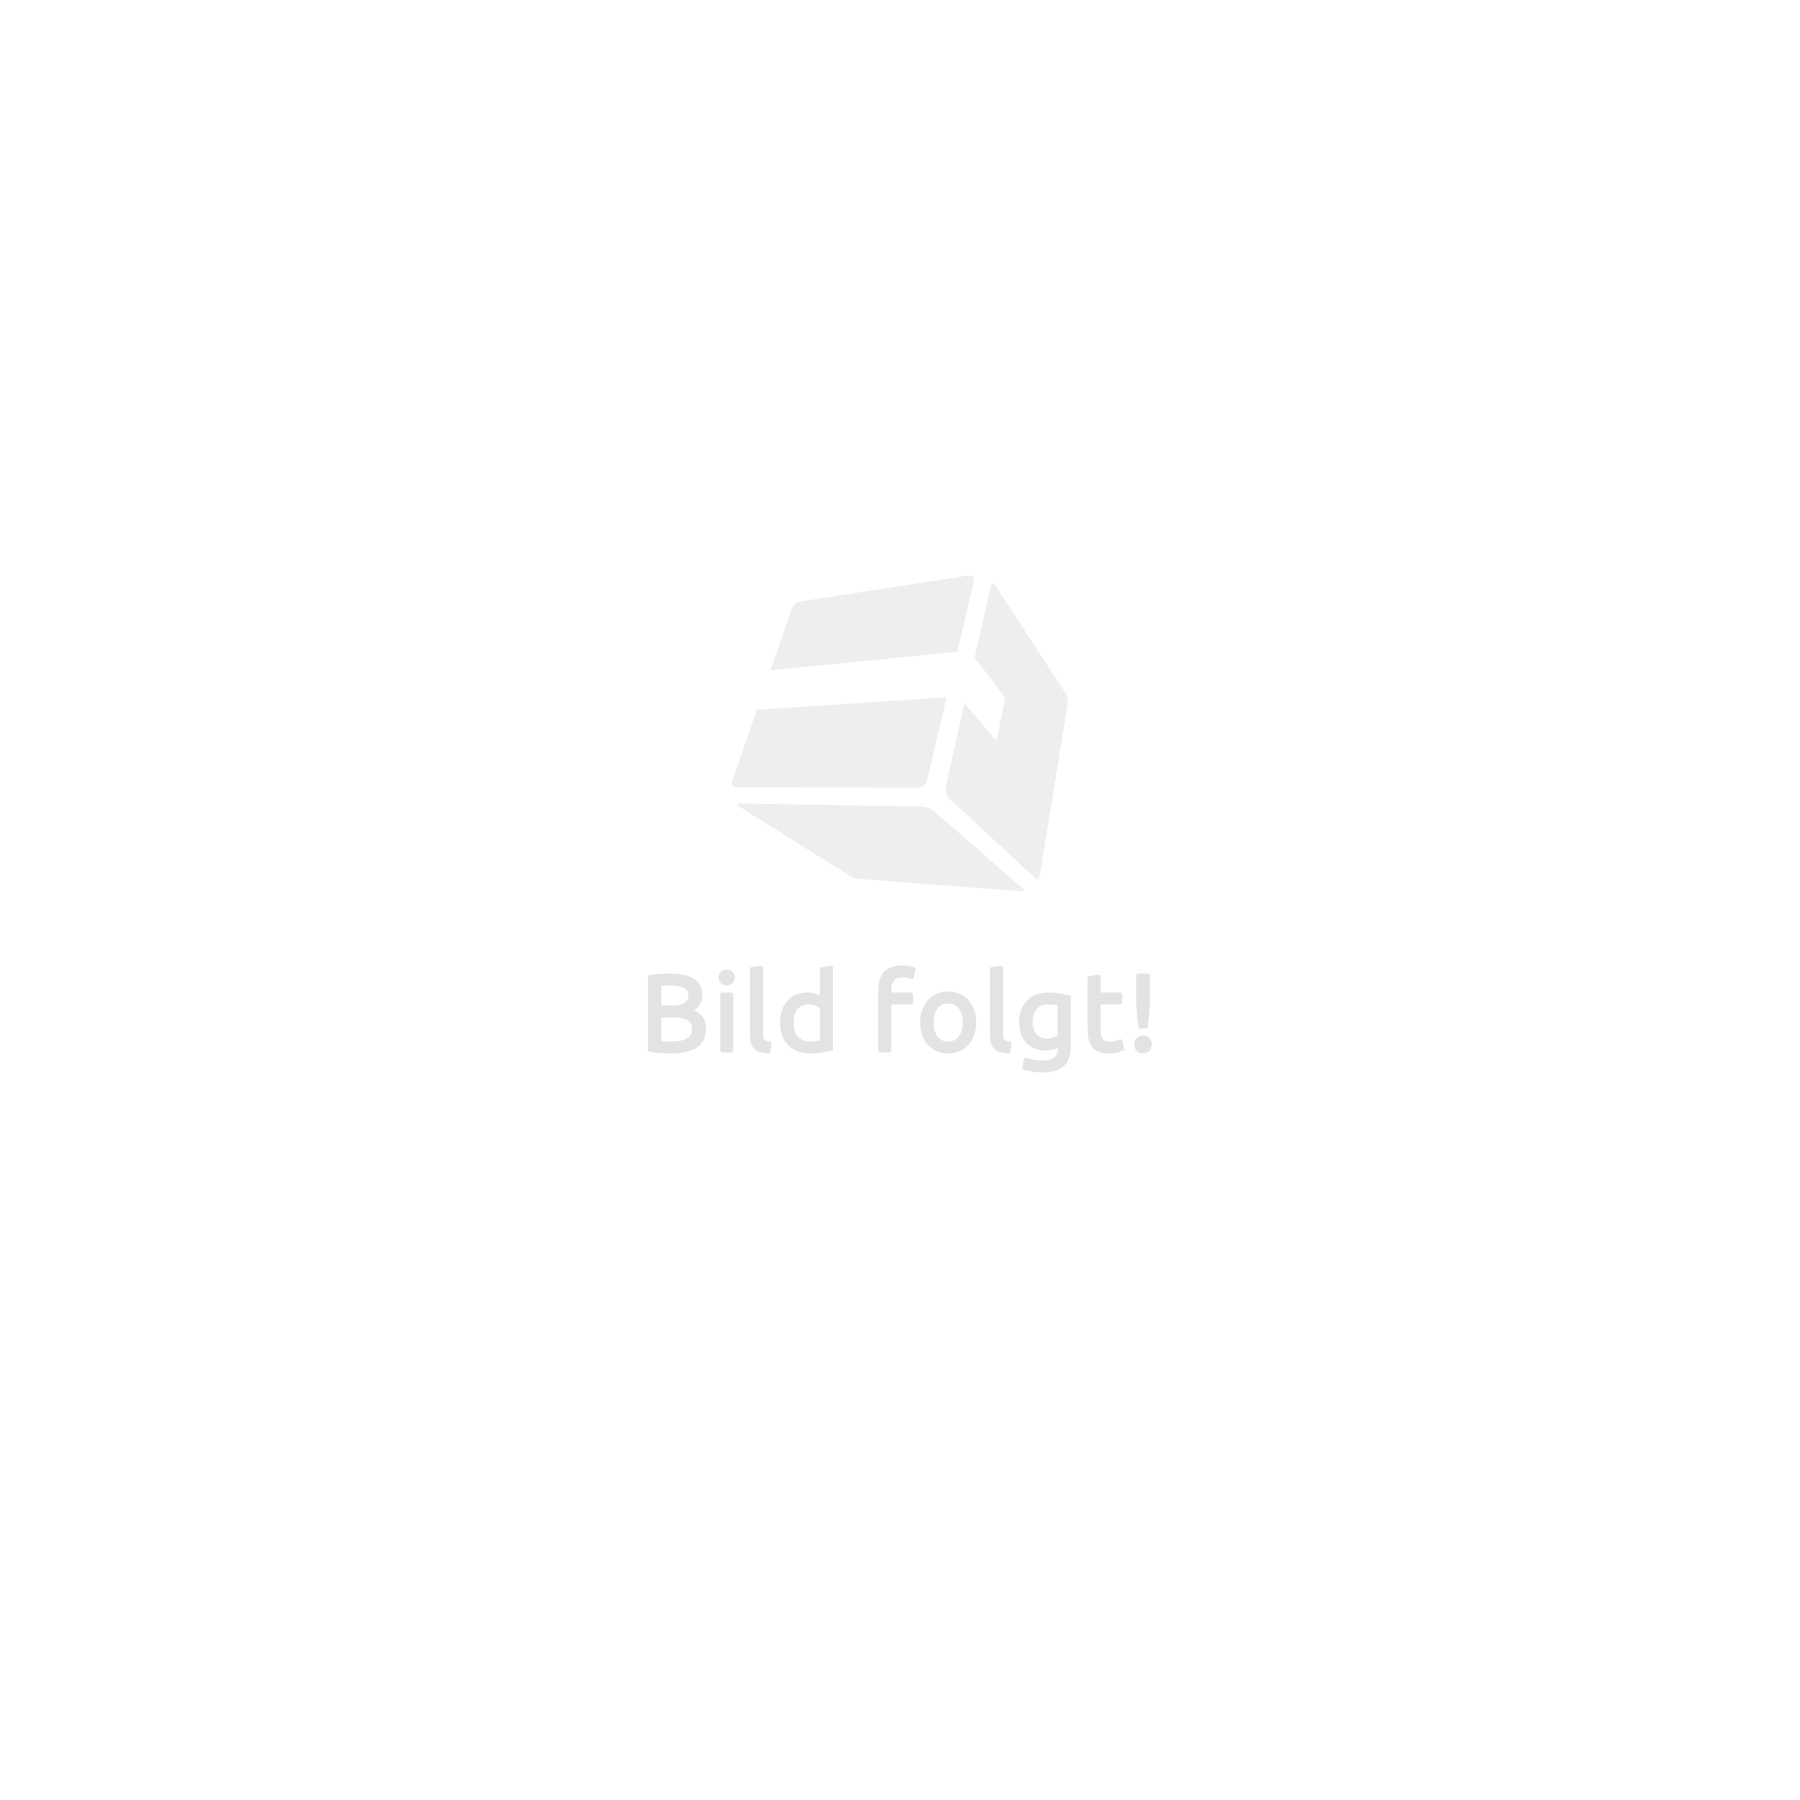 Set de 4 Valises Trolley - ABS - 4 Roues Pivotantes à 360° gris